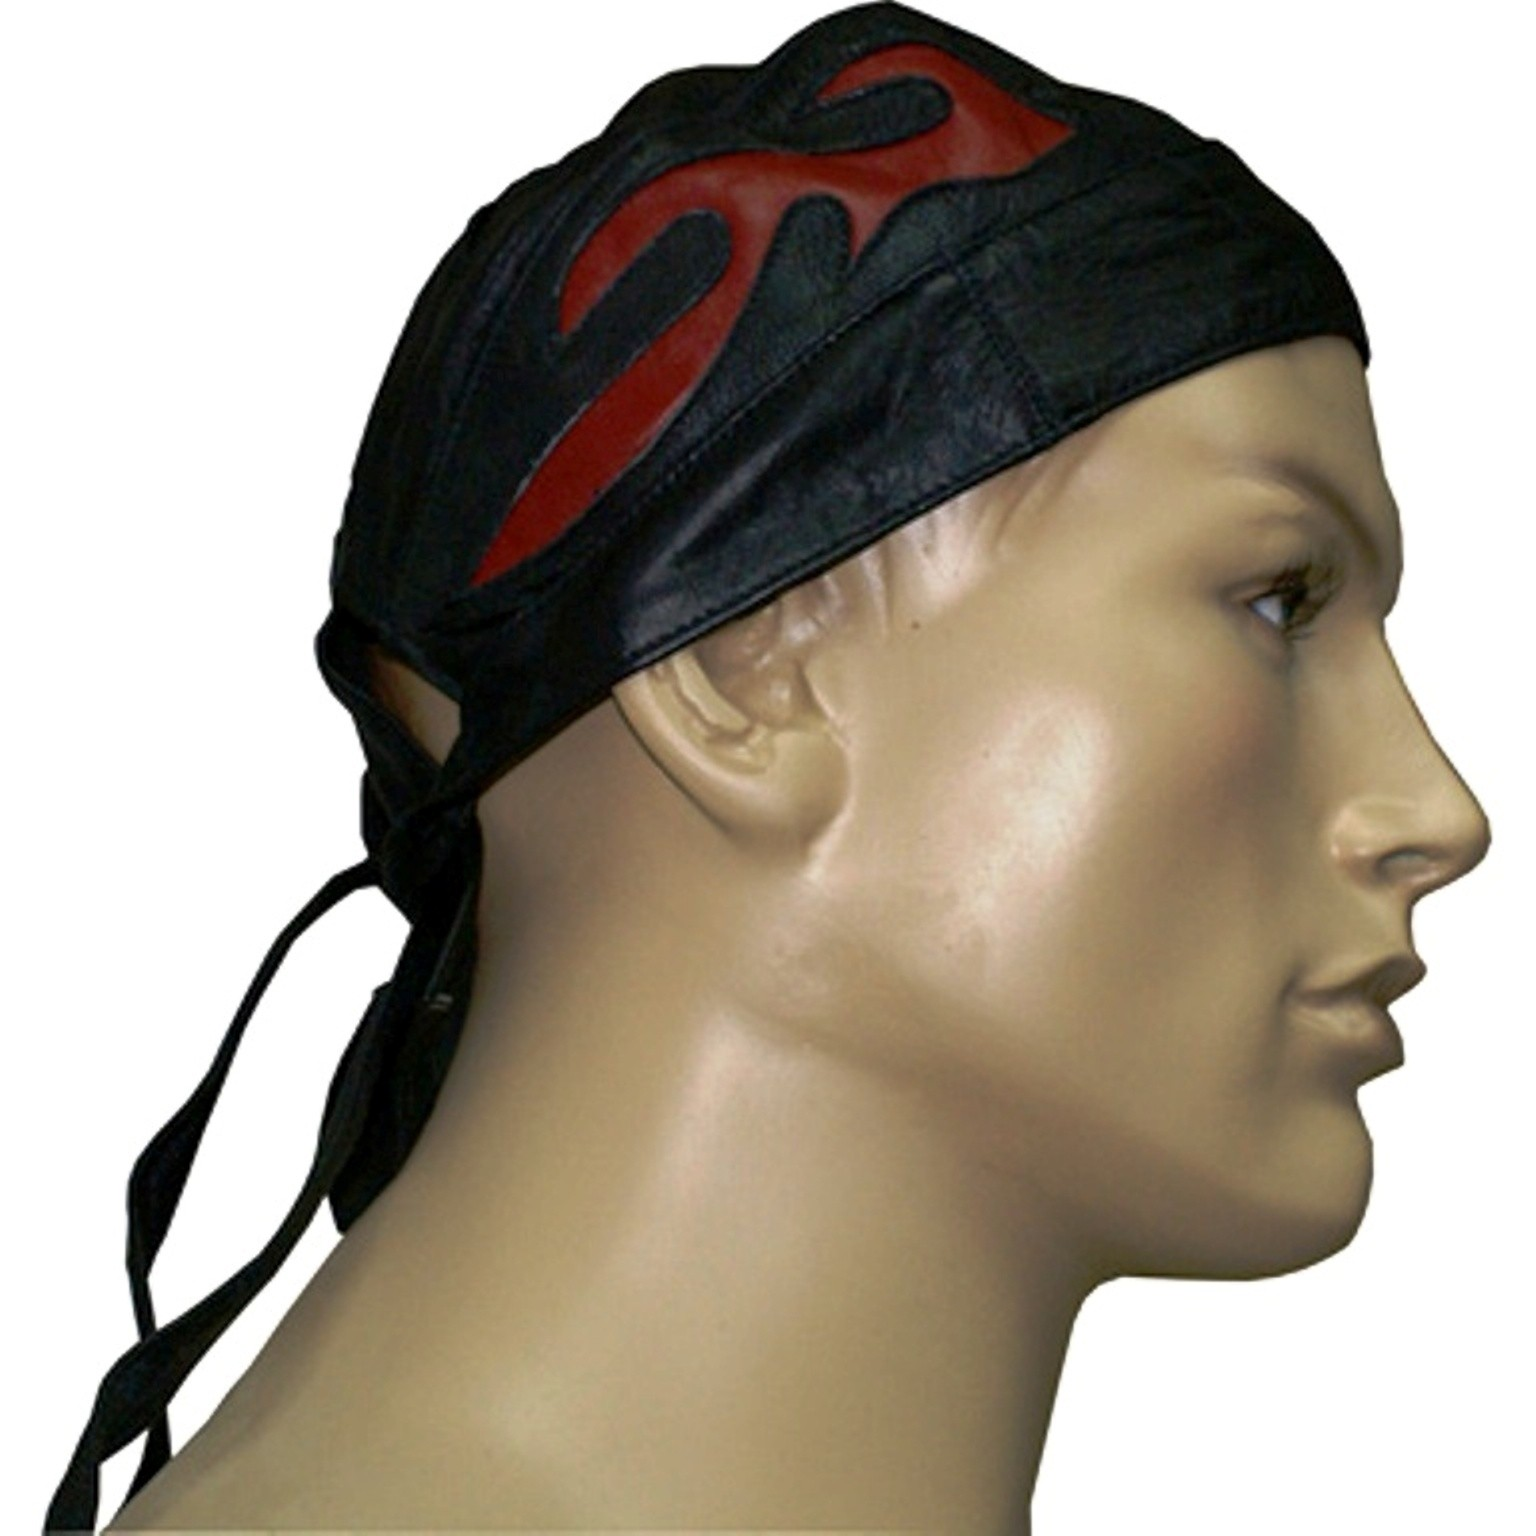 HMB-901F-2 LEATHER SKULLCAP BANDANA CAPS DURAG HATS BIKER HEAD GEAR